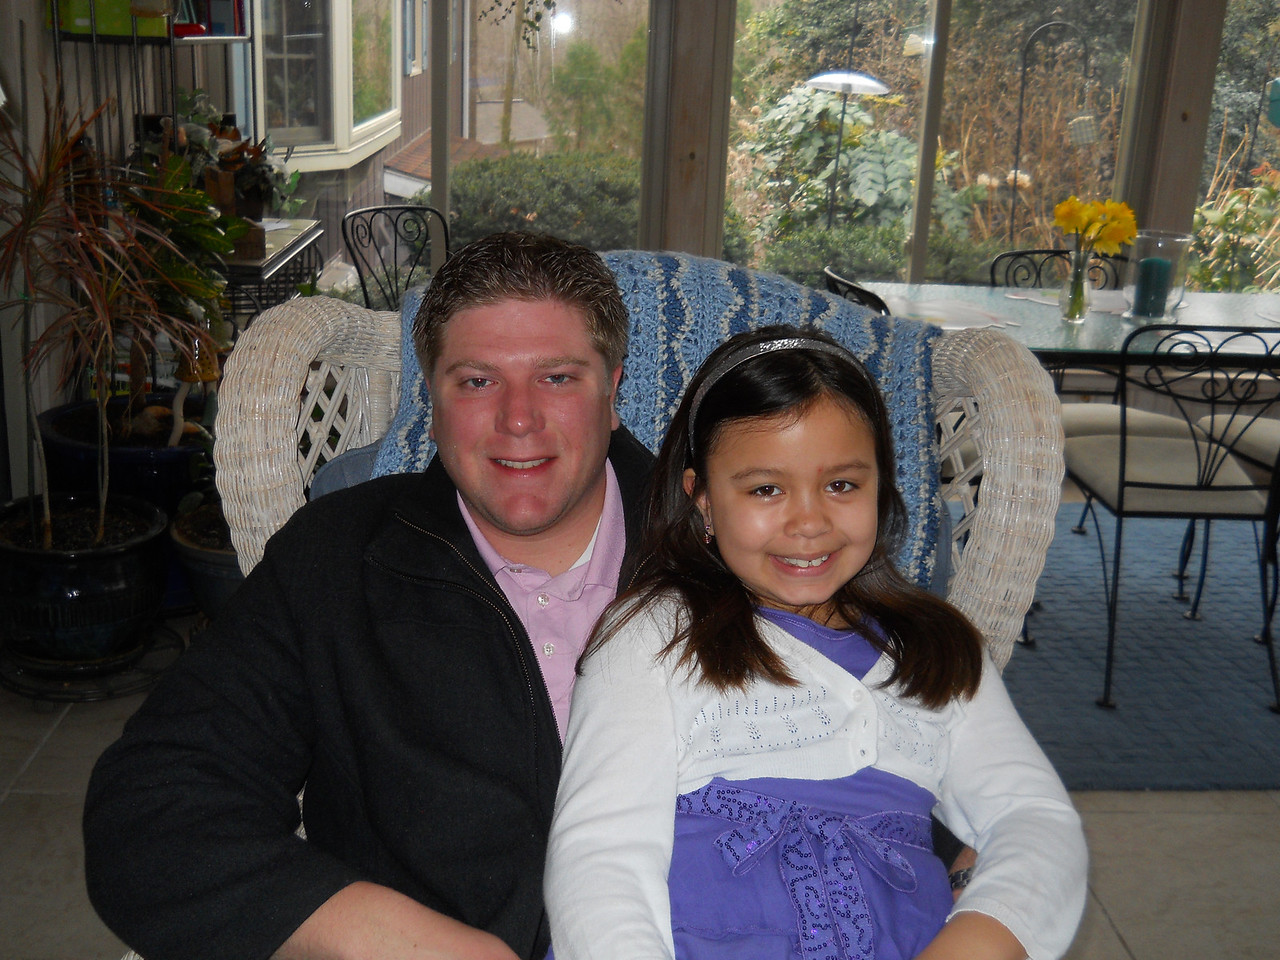 Easter Sunday morning - Kaidyn and her Dad